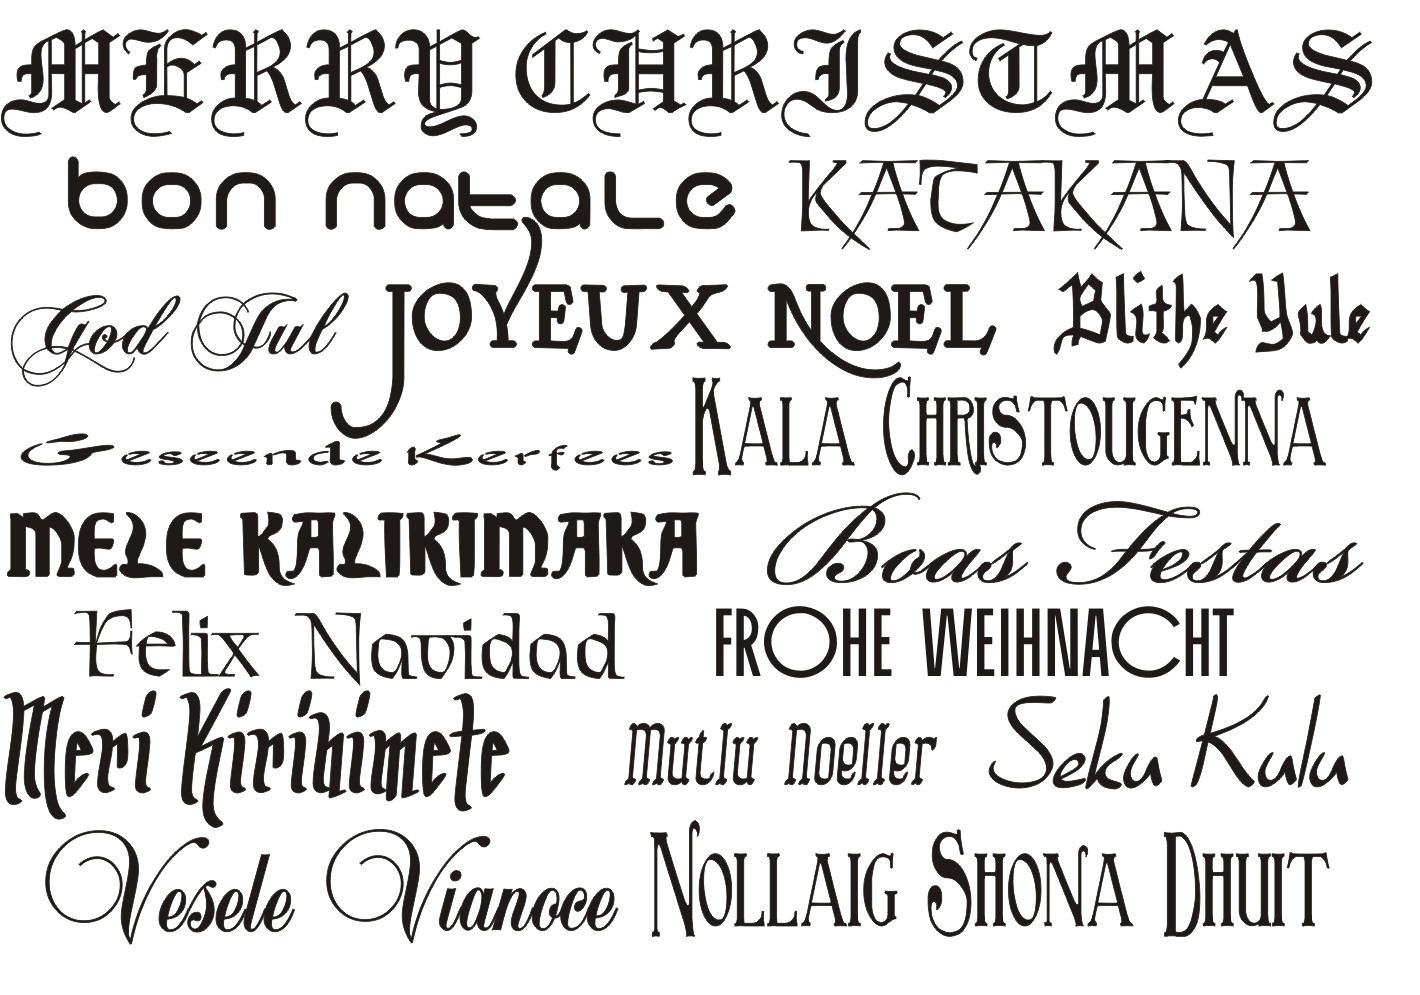 Christmas-in-All-Different-Languages-Cards